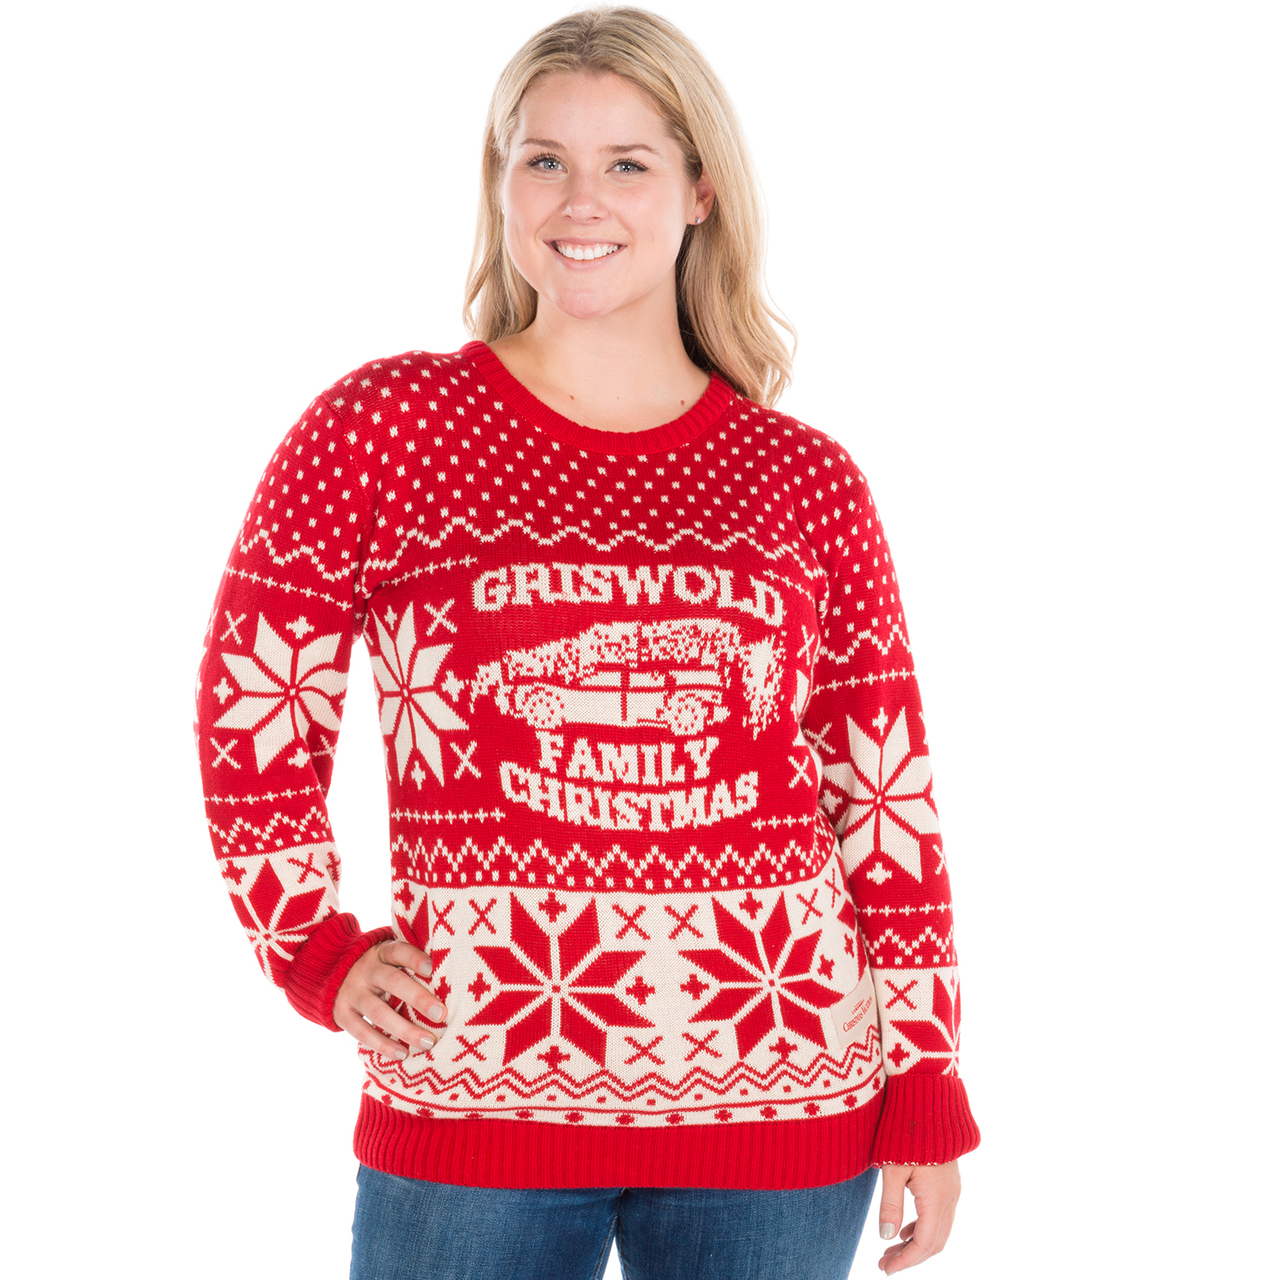 Christmas pullover sweaters